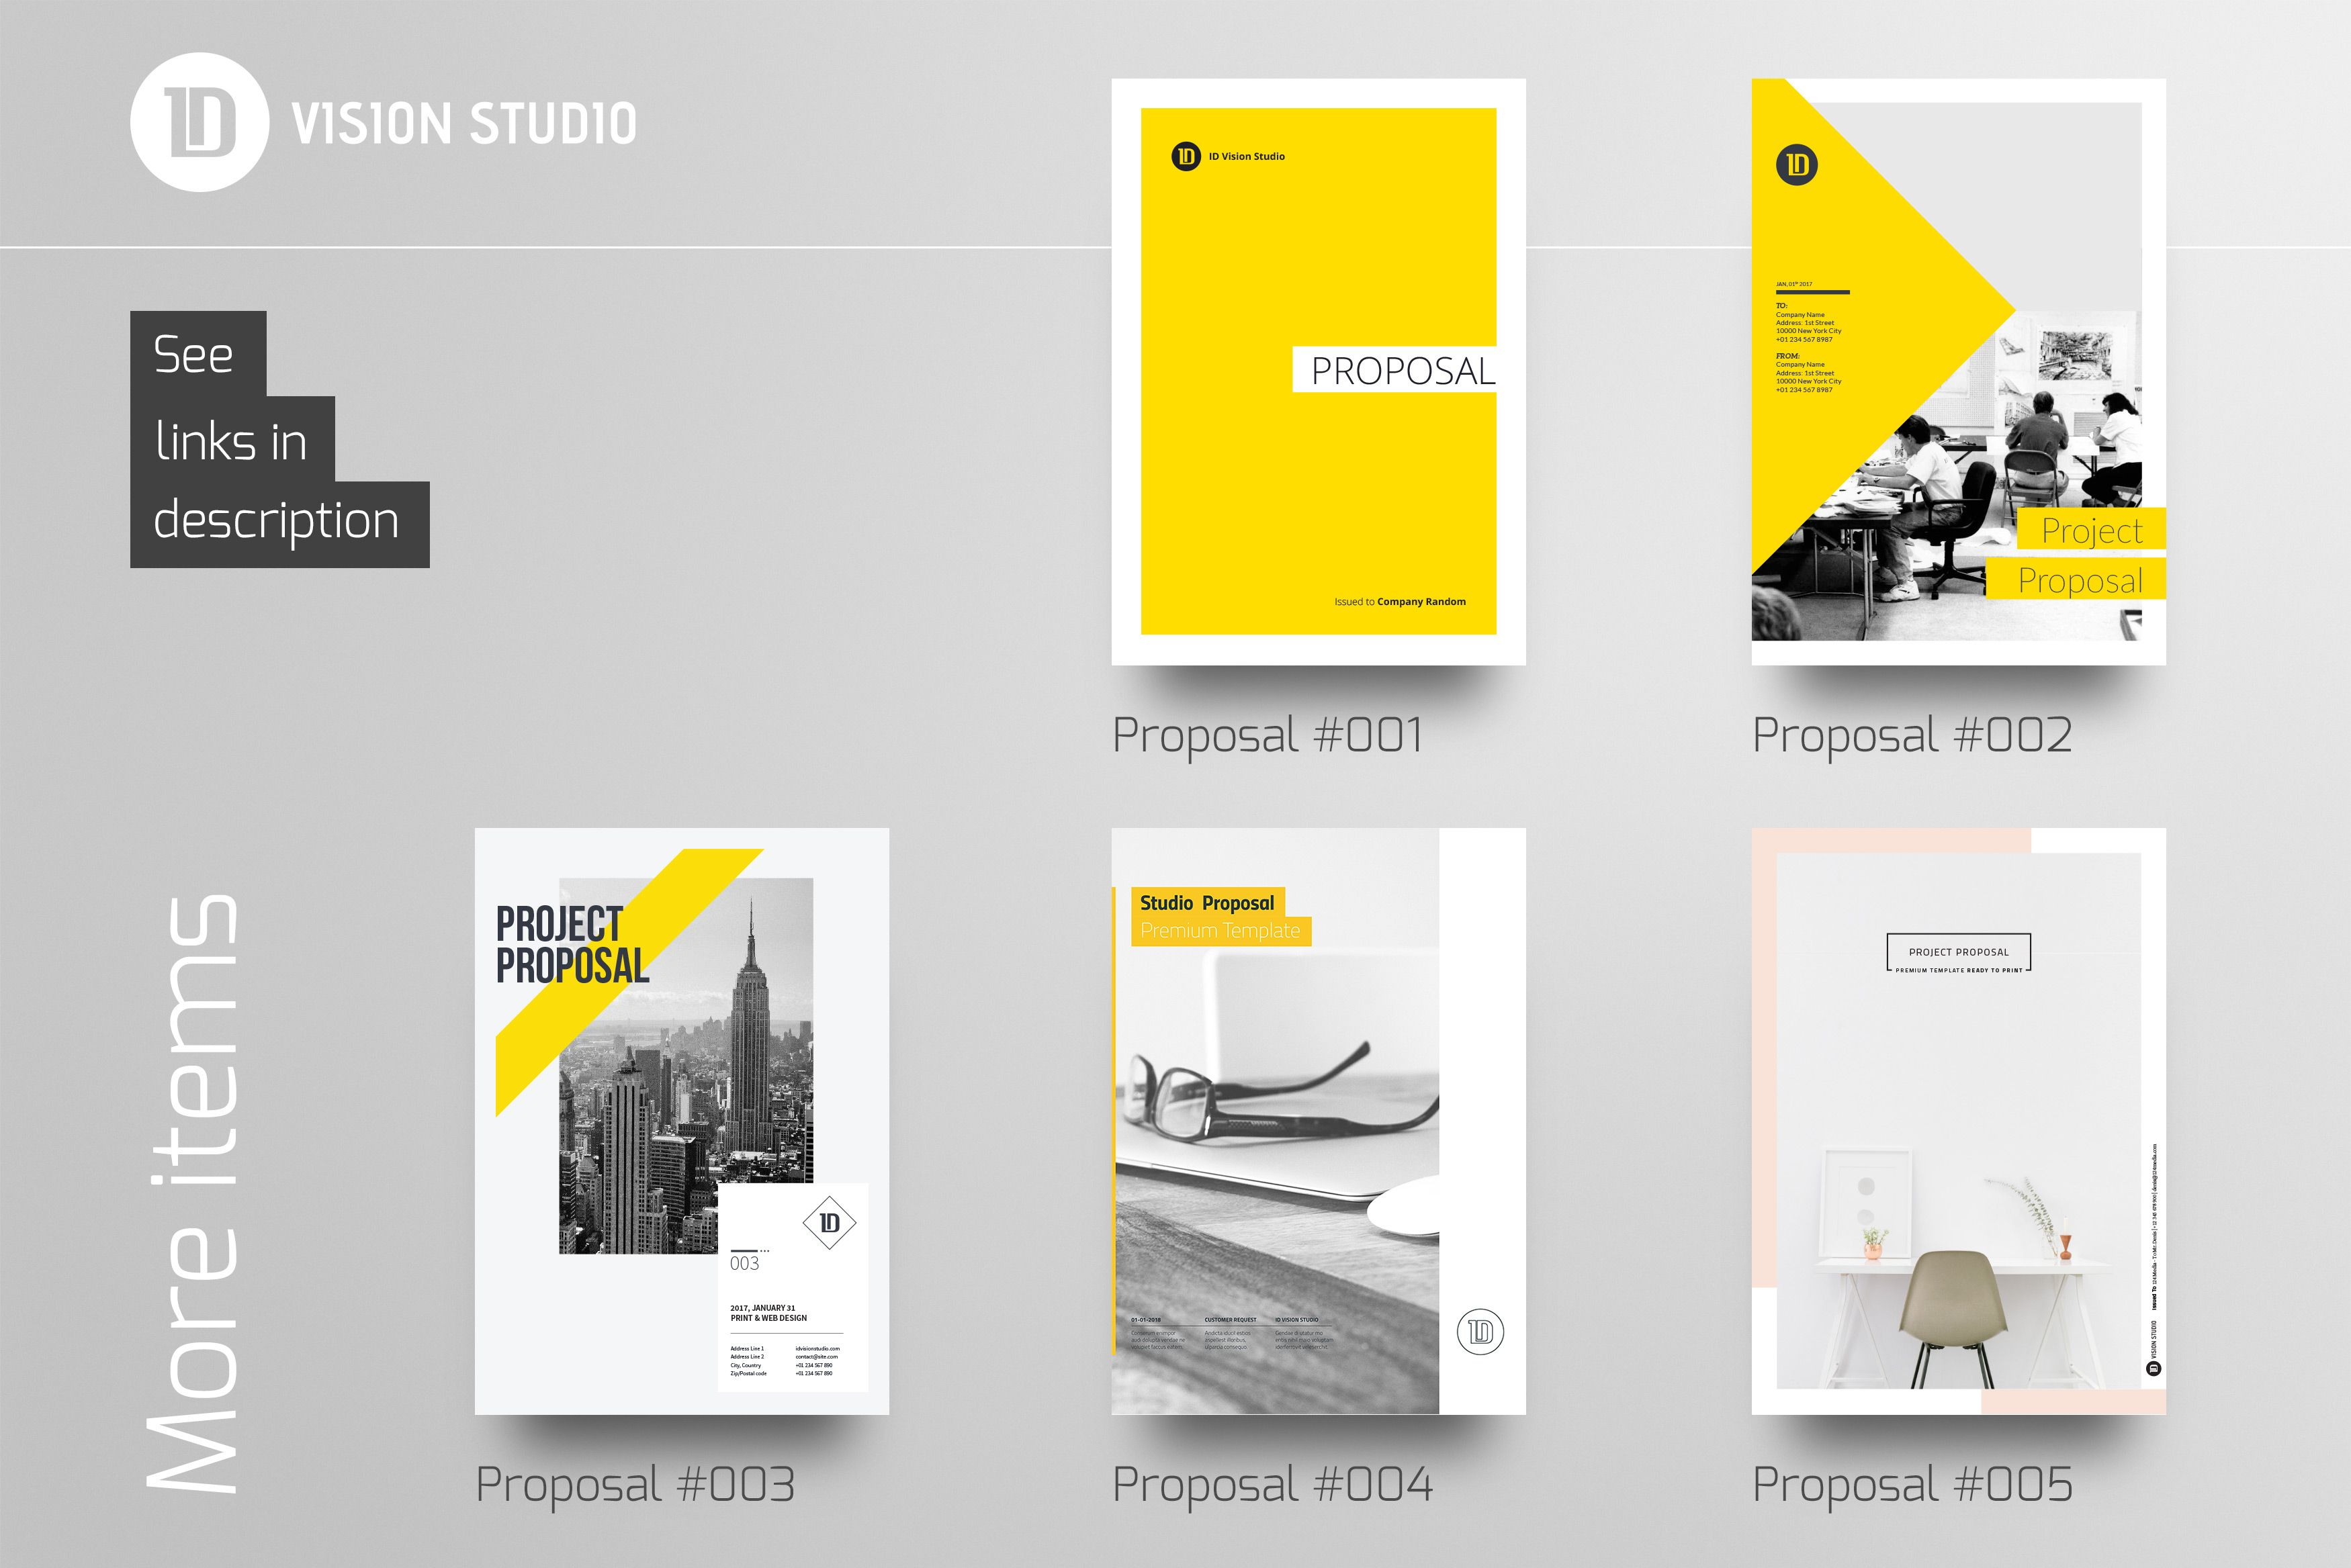 proposal report template%0A Proposal Template     by ID Vision Studio on  creativemarket